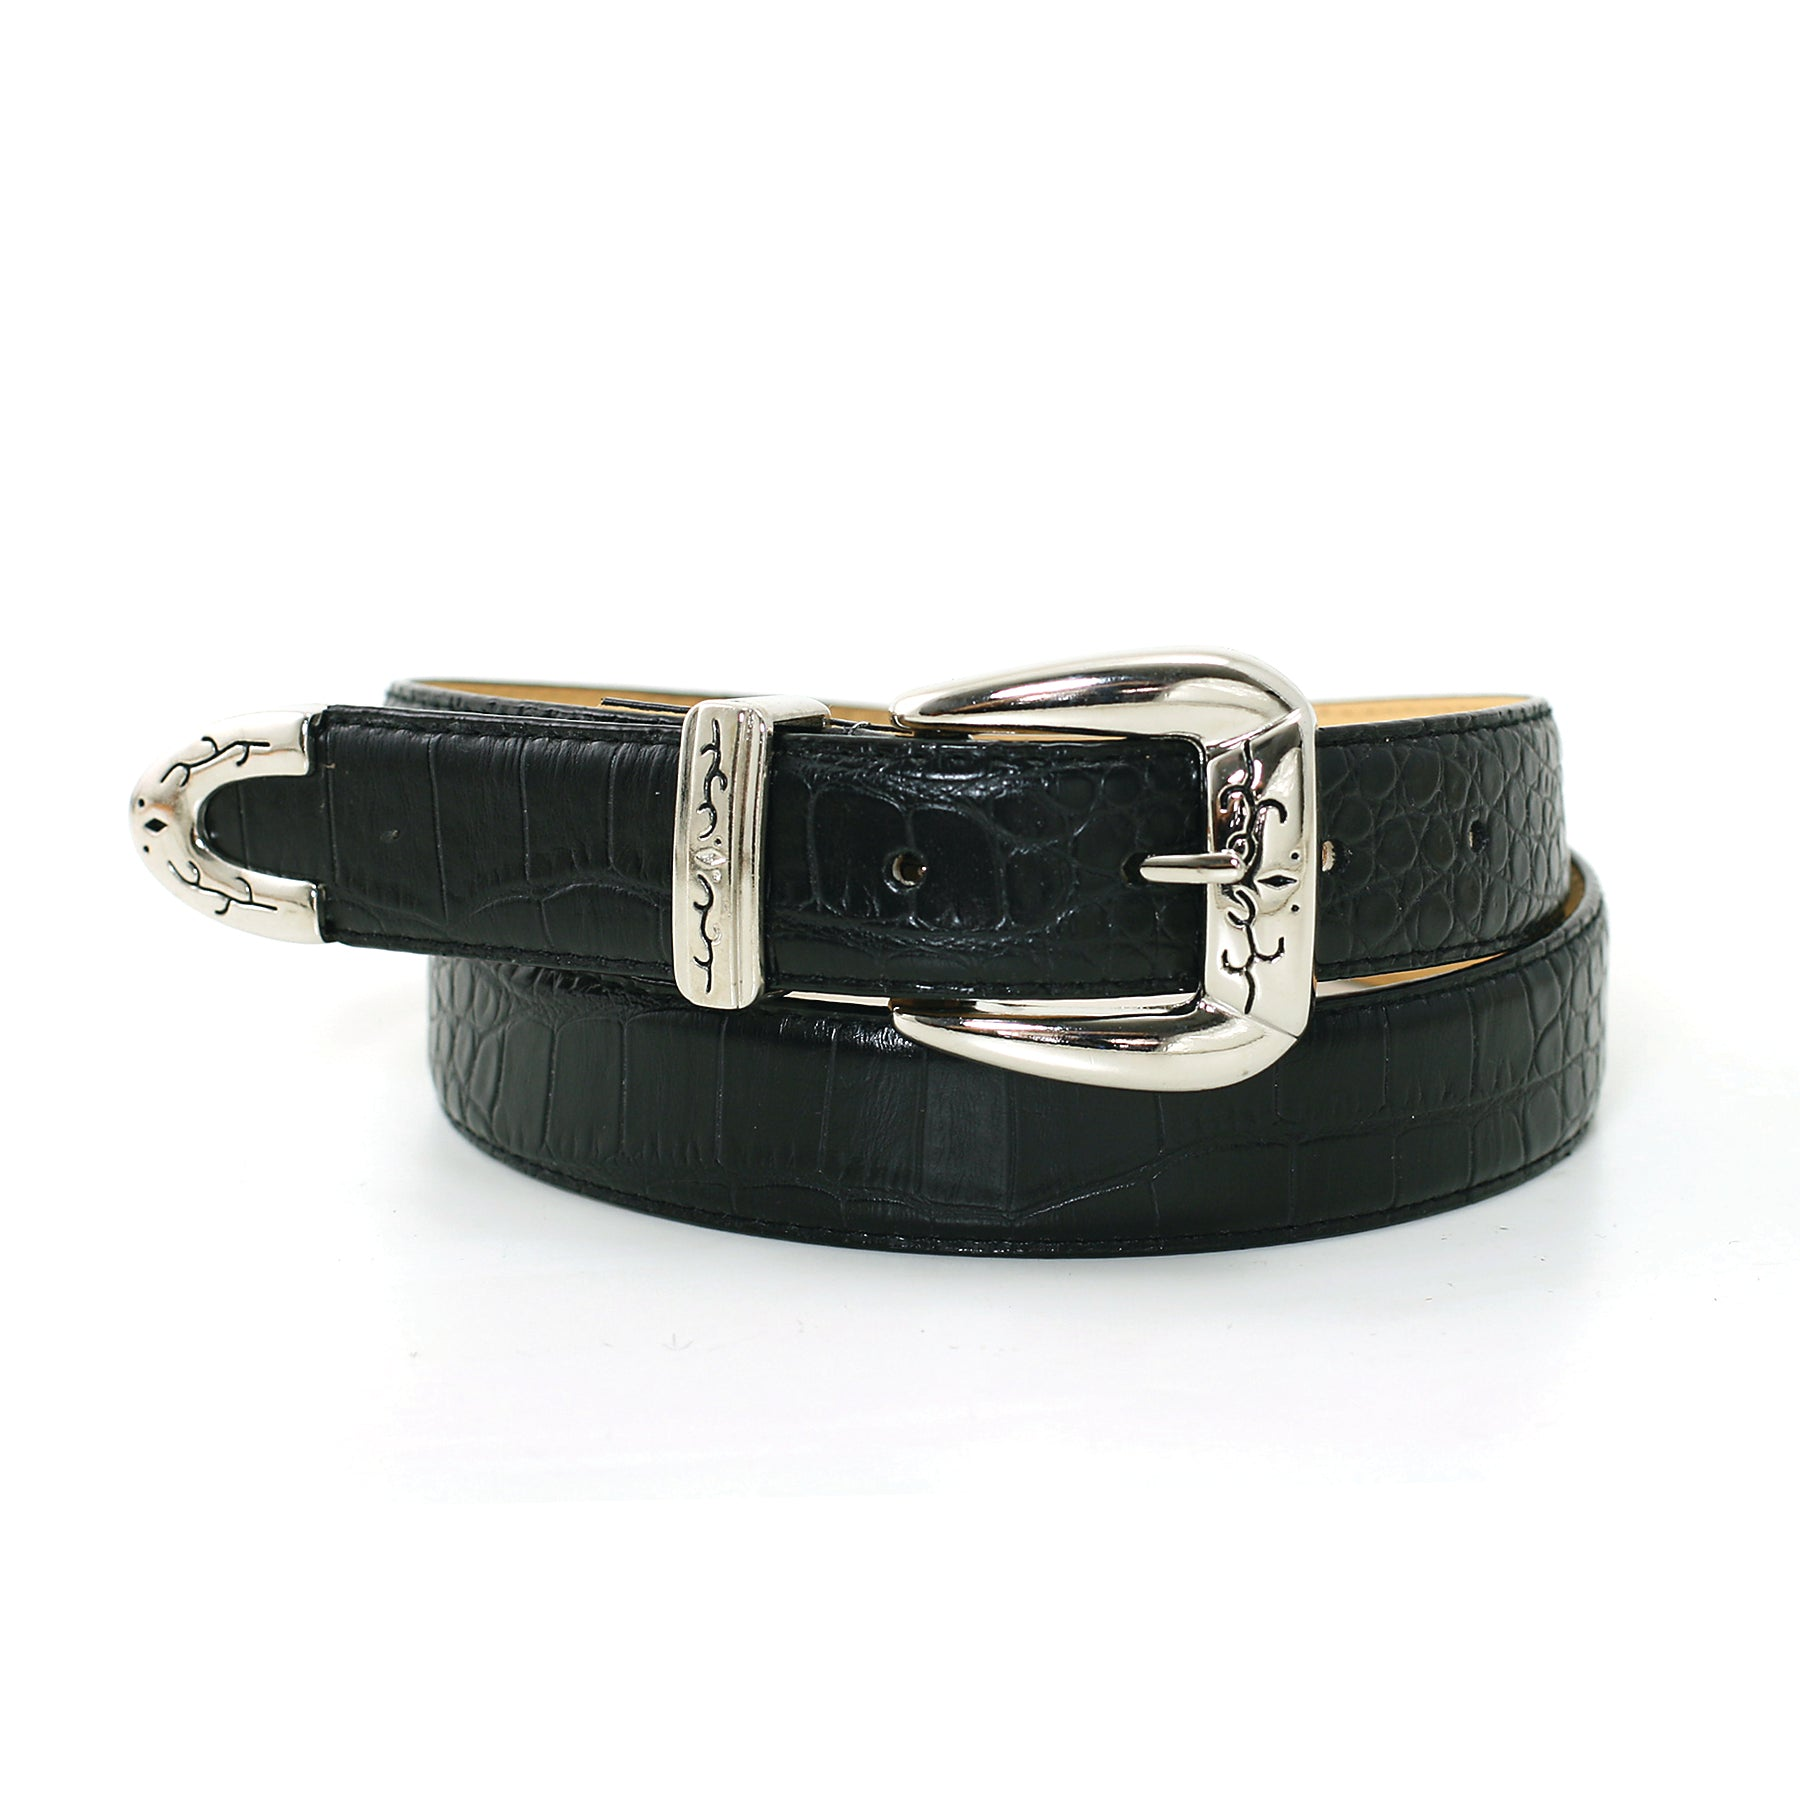 "1 1/8"" Women's Classic Silver Polished and Sleek Buckle on Quality Croc Leatherette Belt Strap front view"